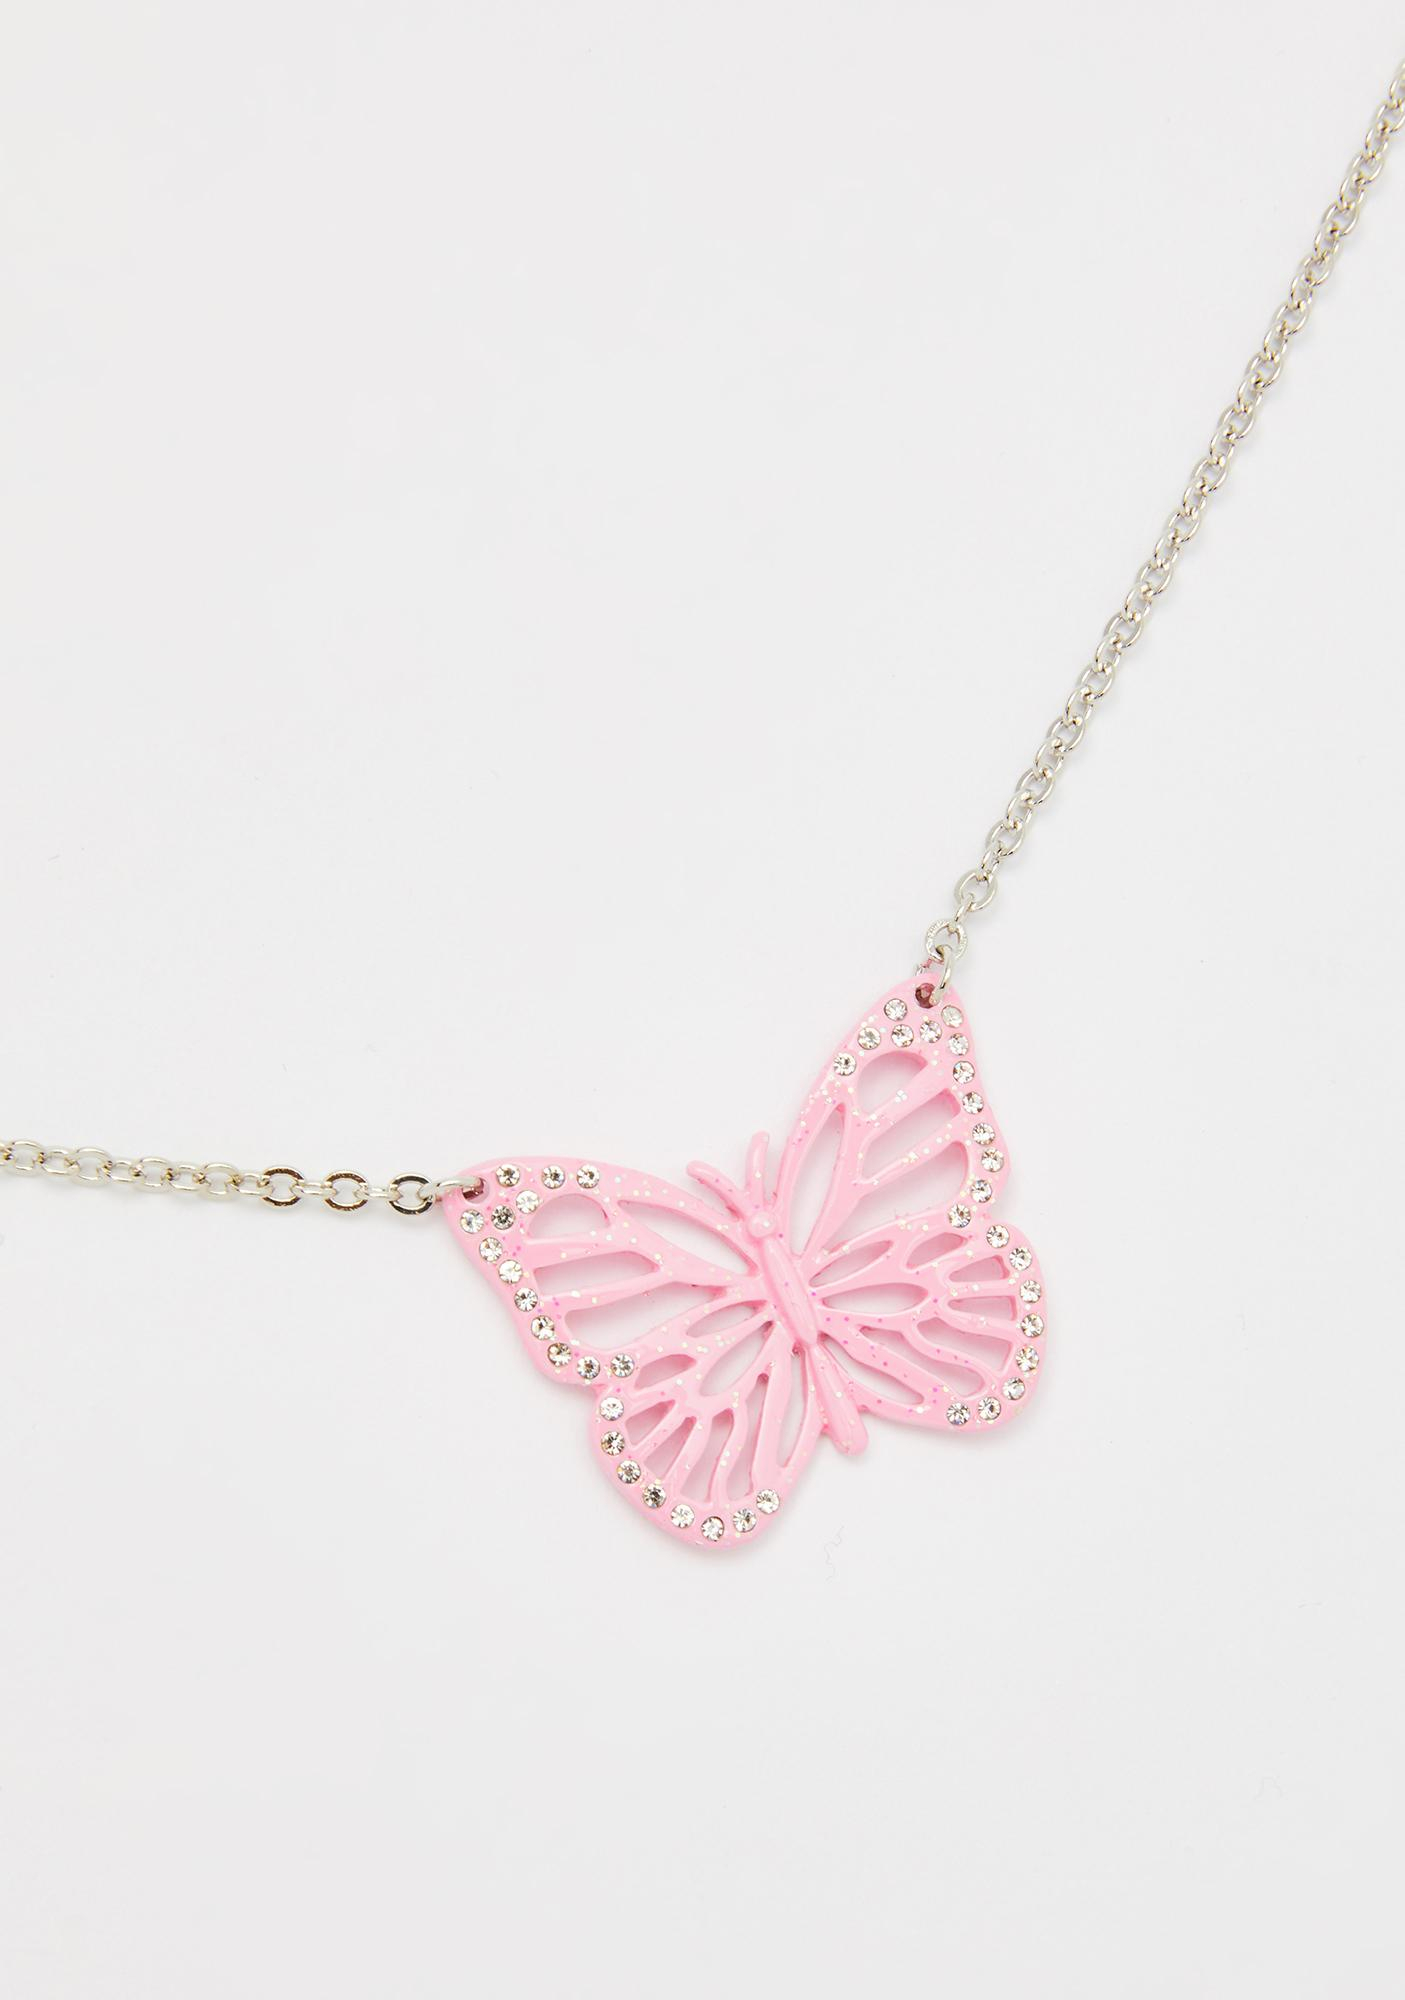 Spoiled Cute Butterfly Necklace With Current Pink Butterfly Locket Element Necklaces (View 23 of 25)